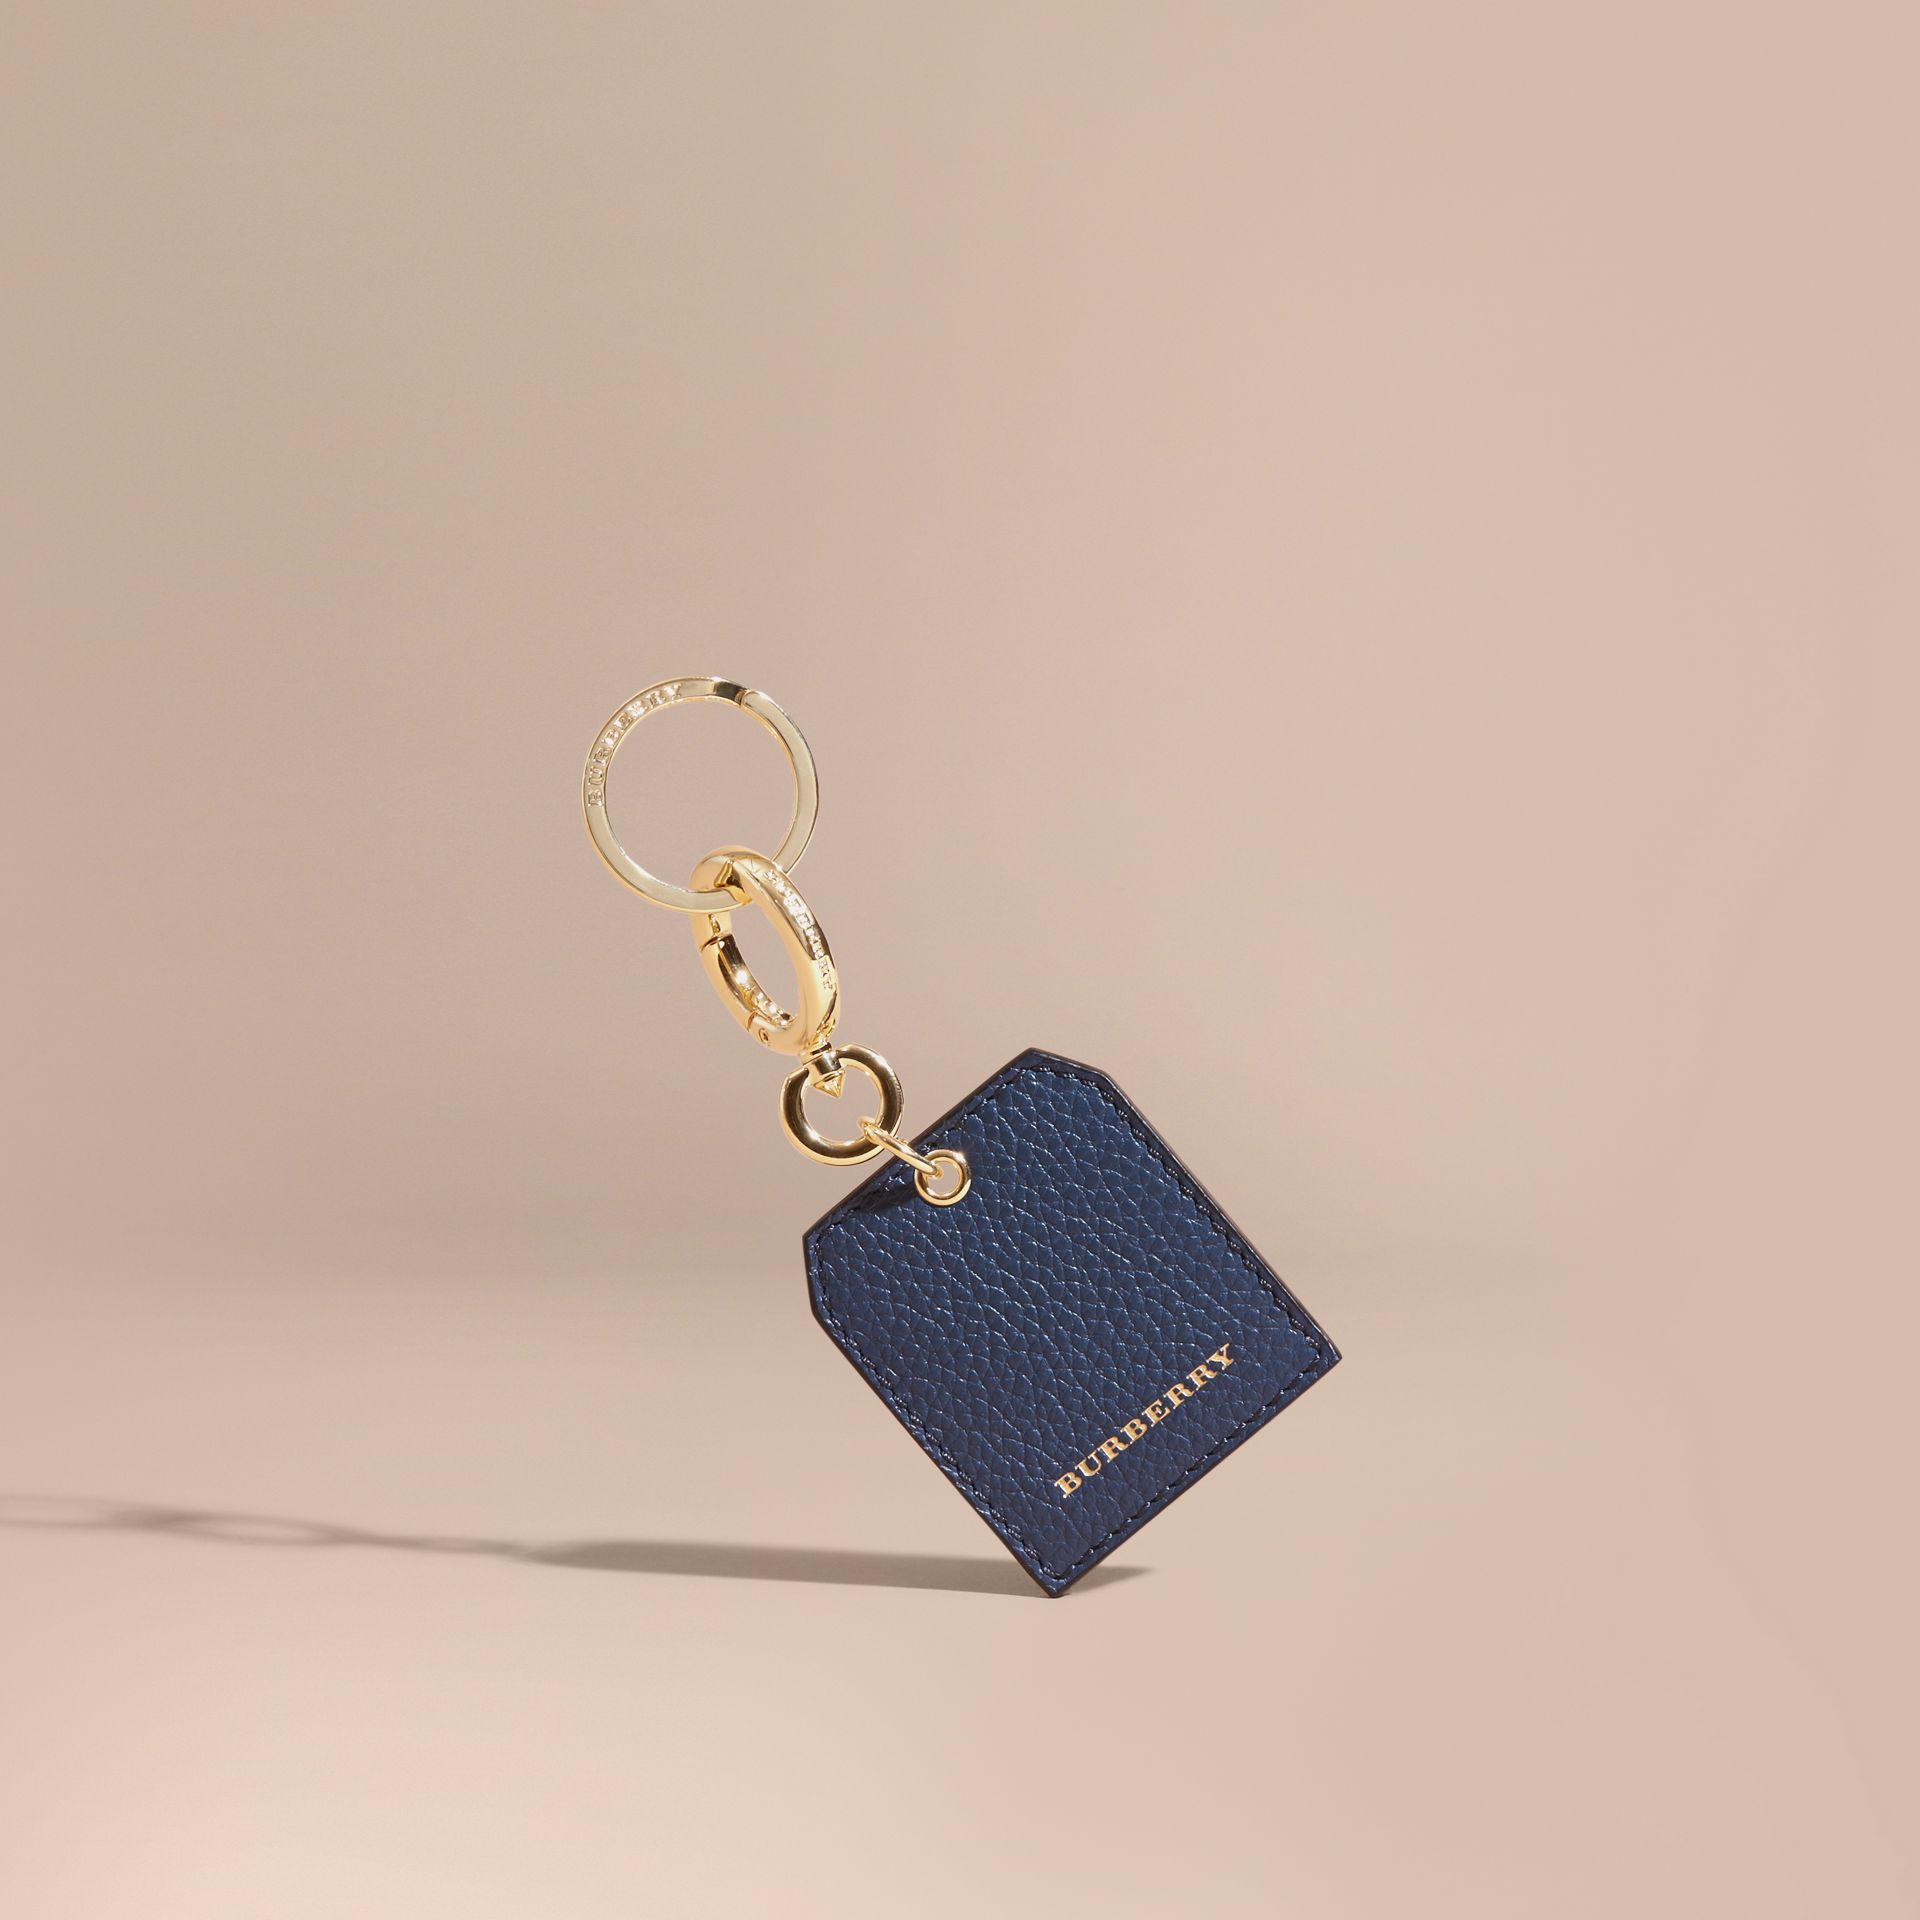 Grainy Leather Key Charm in Bright Navy - Women | Burberry Australia - gallery image 1